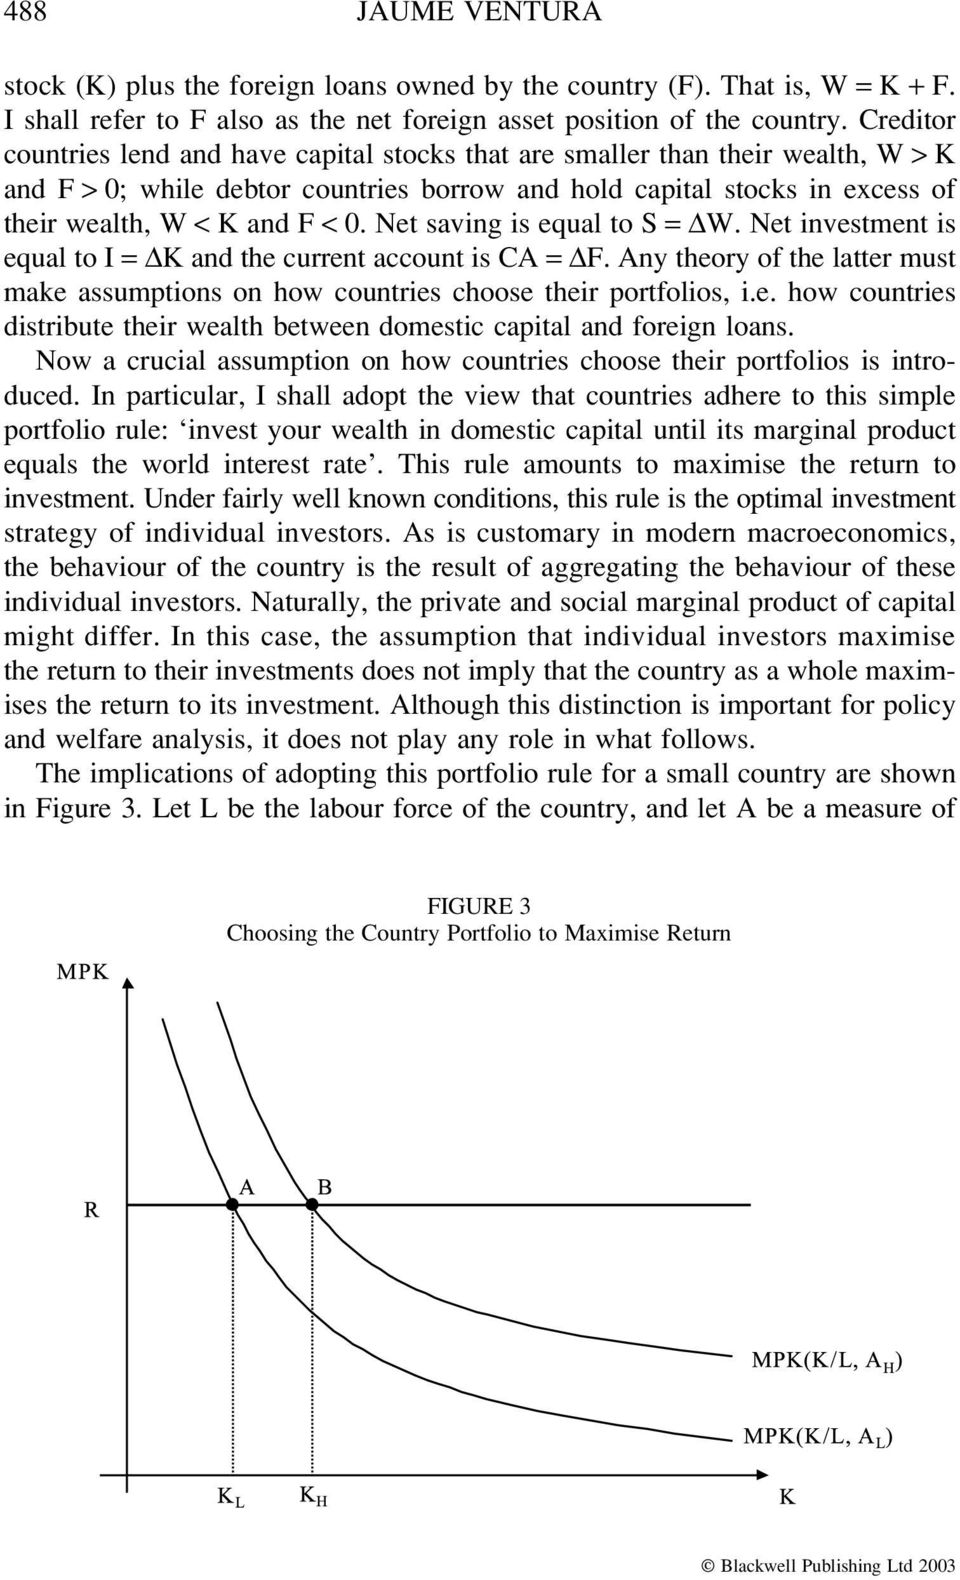 Net saving is equal to S = W. Net investment is equal to I = K and the current account is CA = F. Any theory of the latter must make assumptions on how countries choose their portfolios, i.e. how countries distribute their wealth between domestic capital and foreign loans.